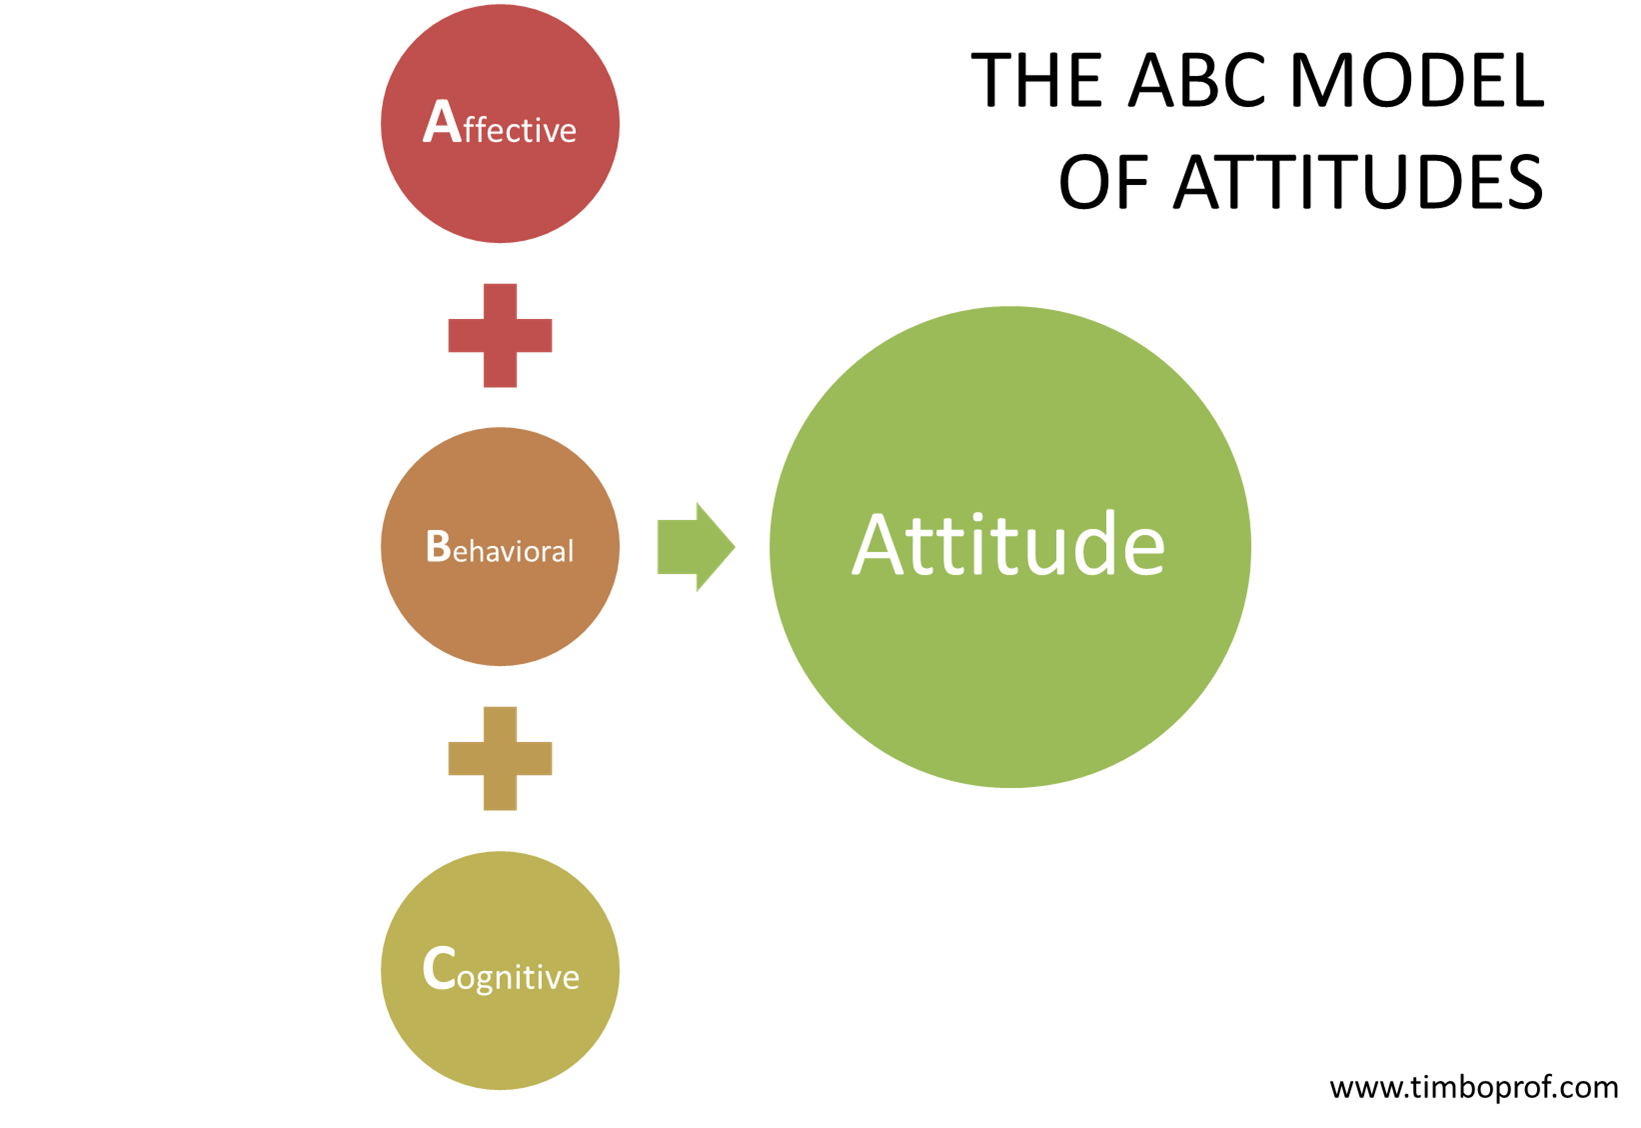 The Graphic Illustrates The Abc Model Of Attitudes